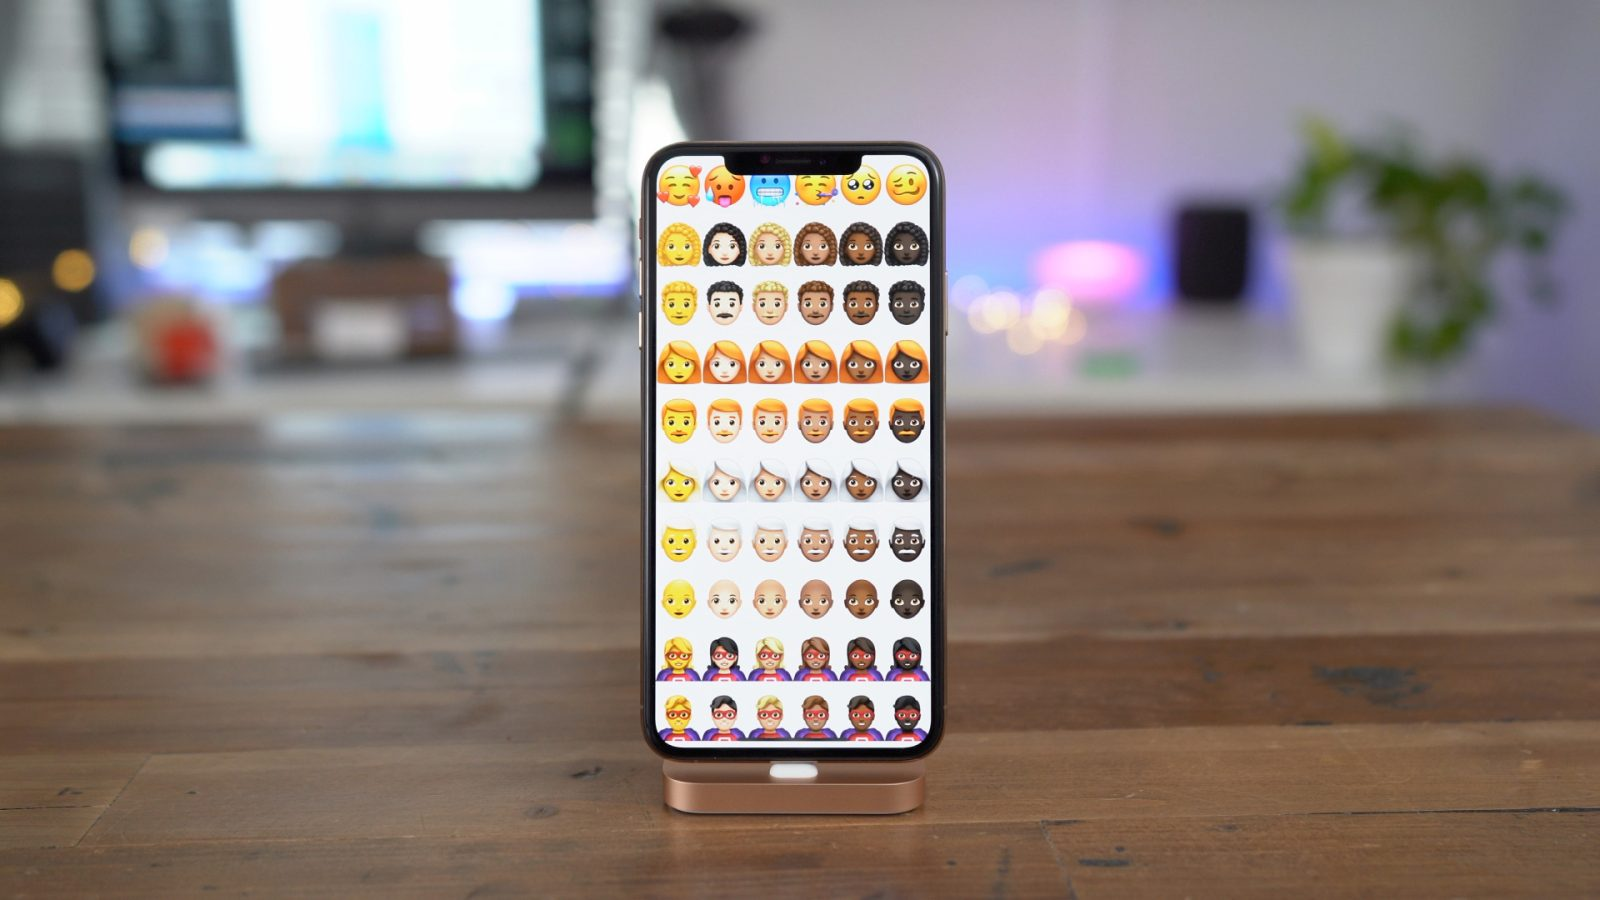 Third iOS 12.1, WatchOS 5.1, and TvOS 12.1 Developer Betas Now Available